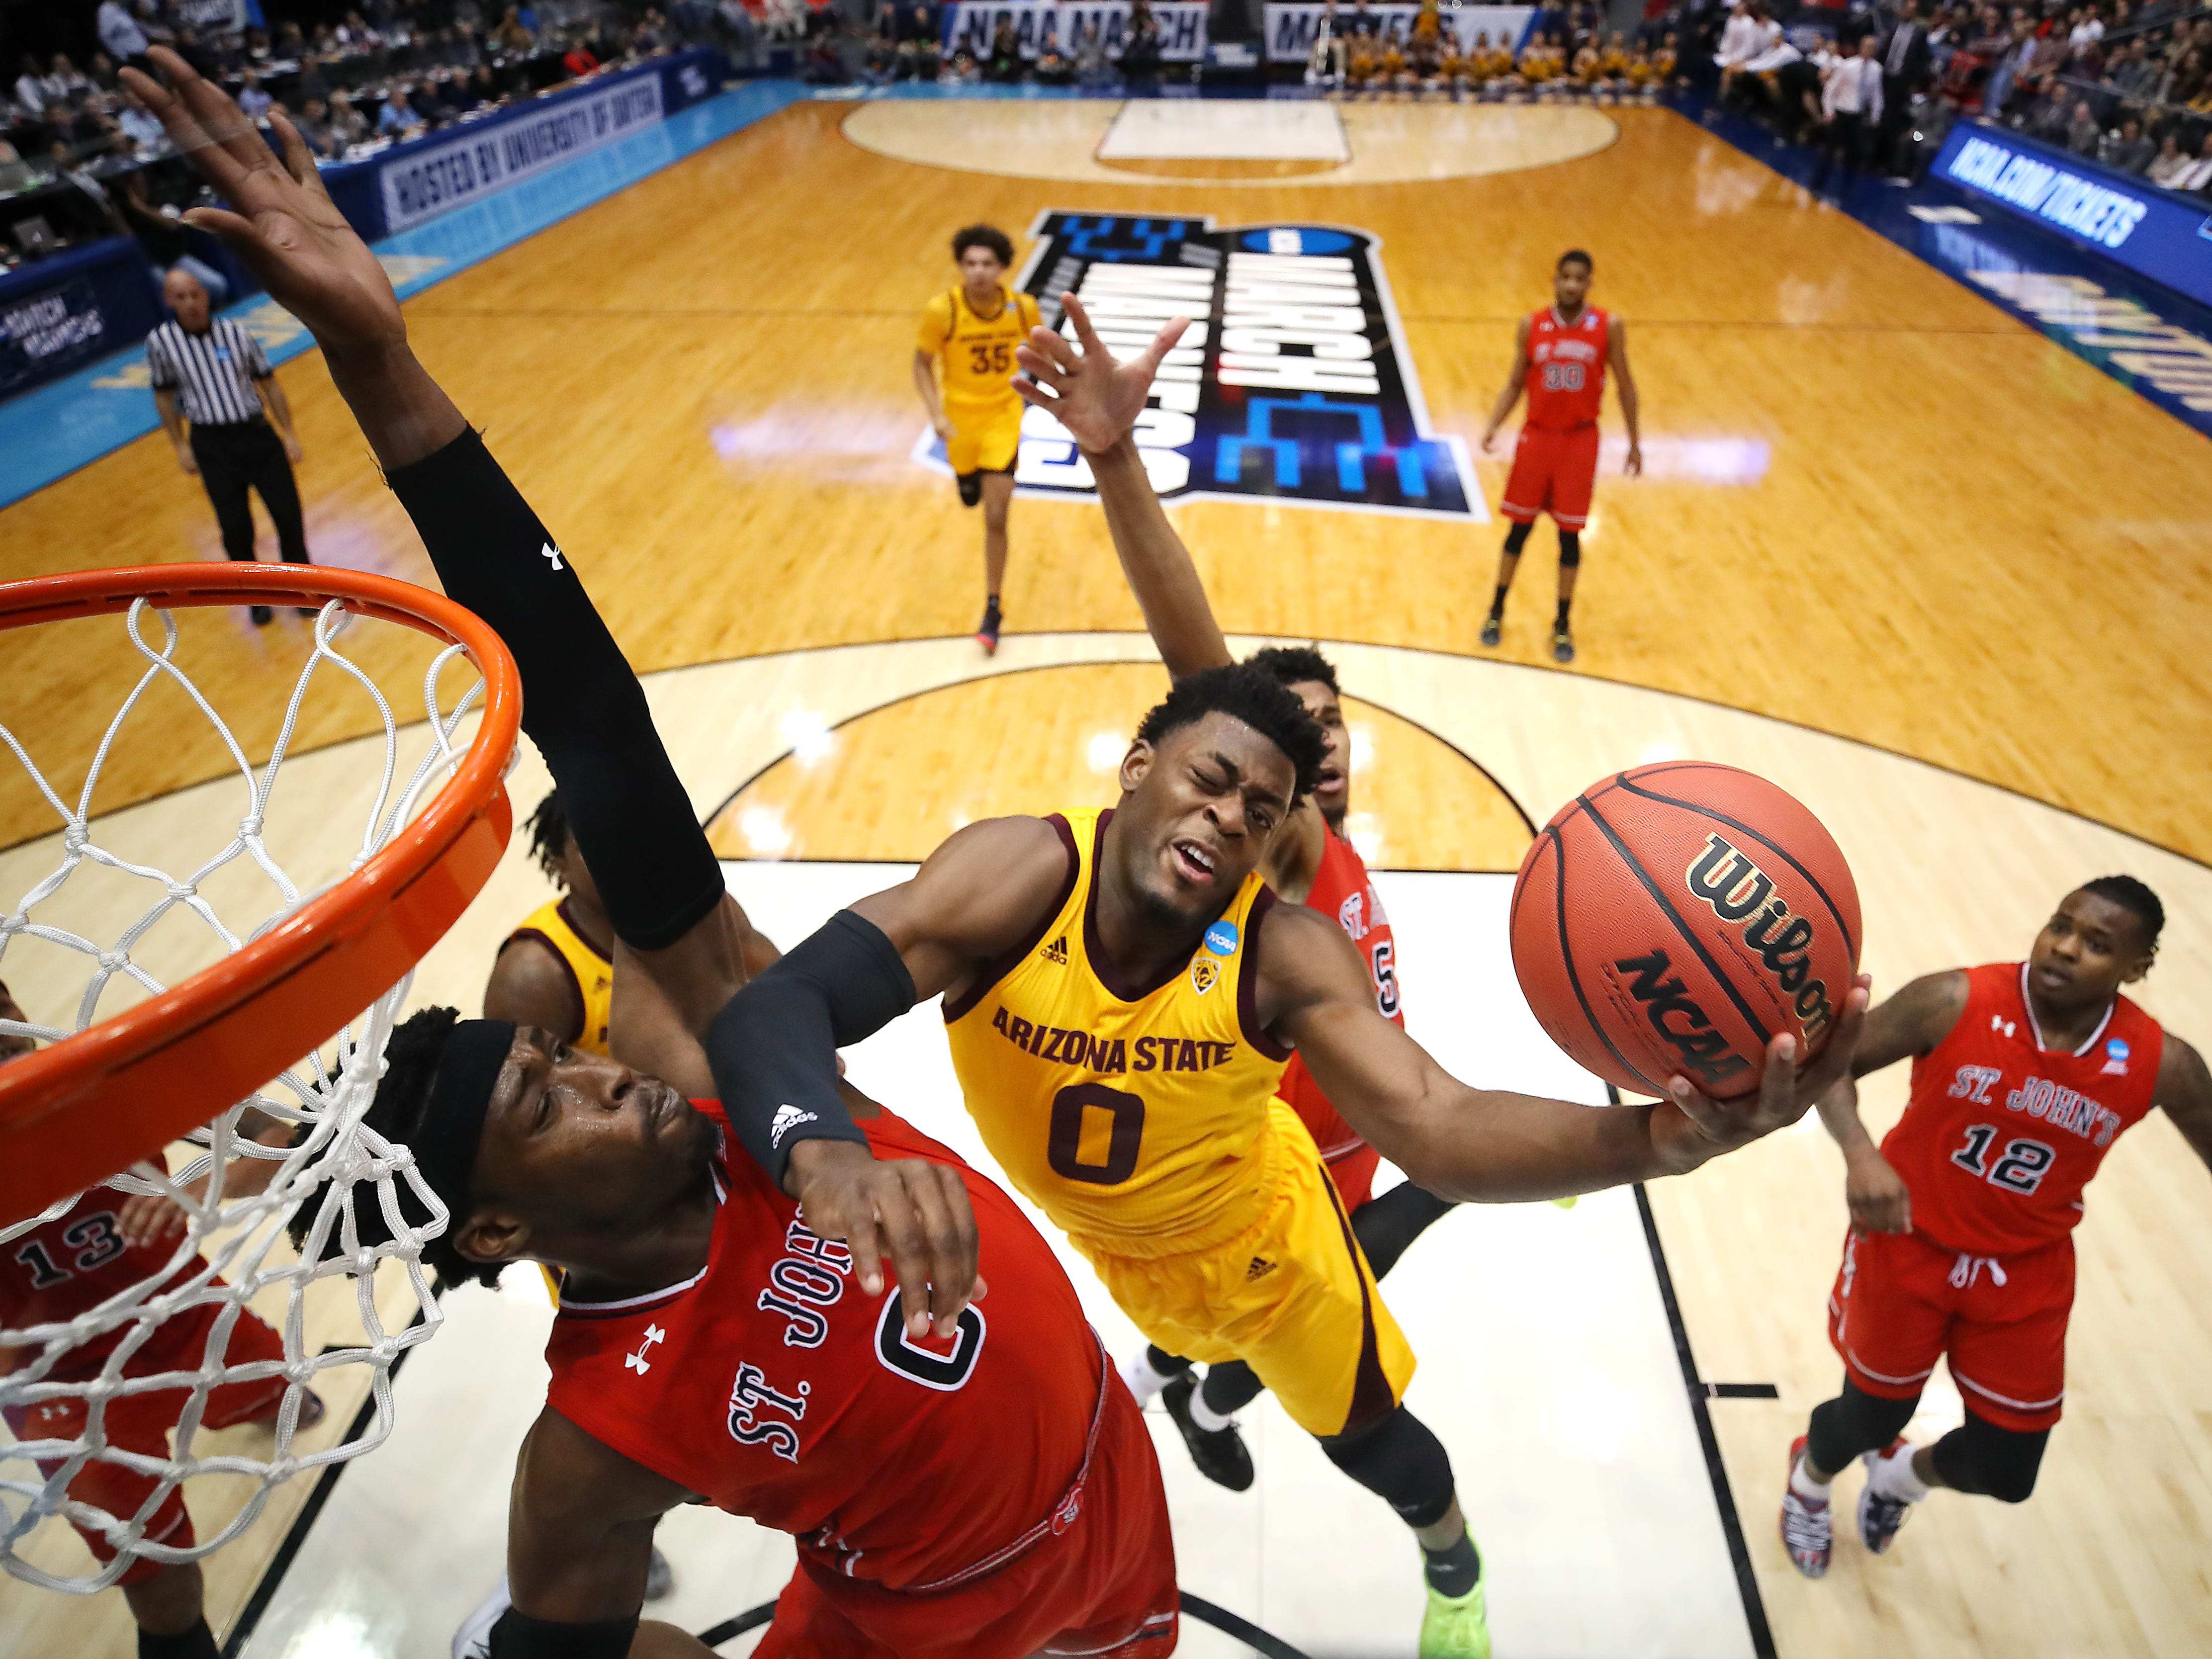 Luguentz Dort #0 of the Arizona State Sun Devils drives to the basket against Sedee Keita #0 of the St. John's Red Storm during the first half in the First Four of the 2019 NCAA Men's Basketball Tournament at UD Arena on March 20, 2019 in Dayton, Ohio.